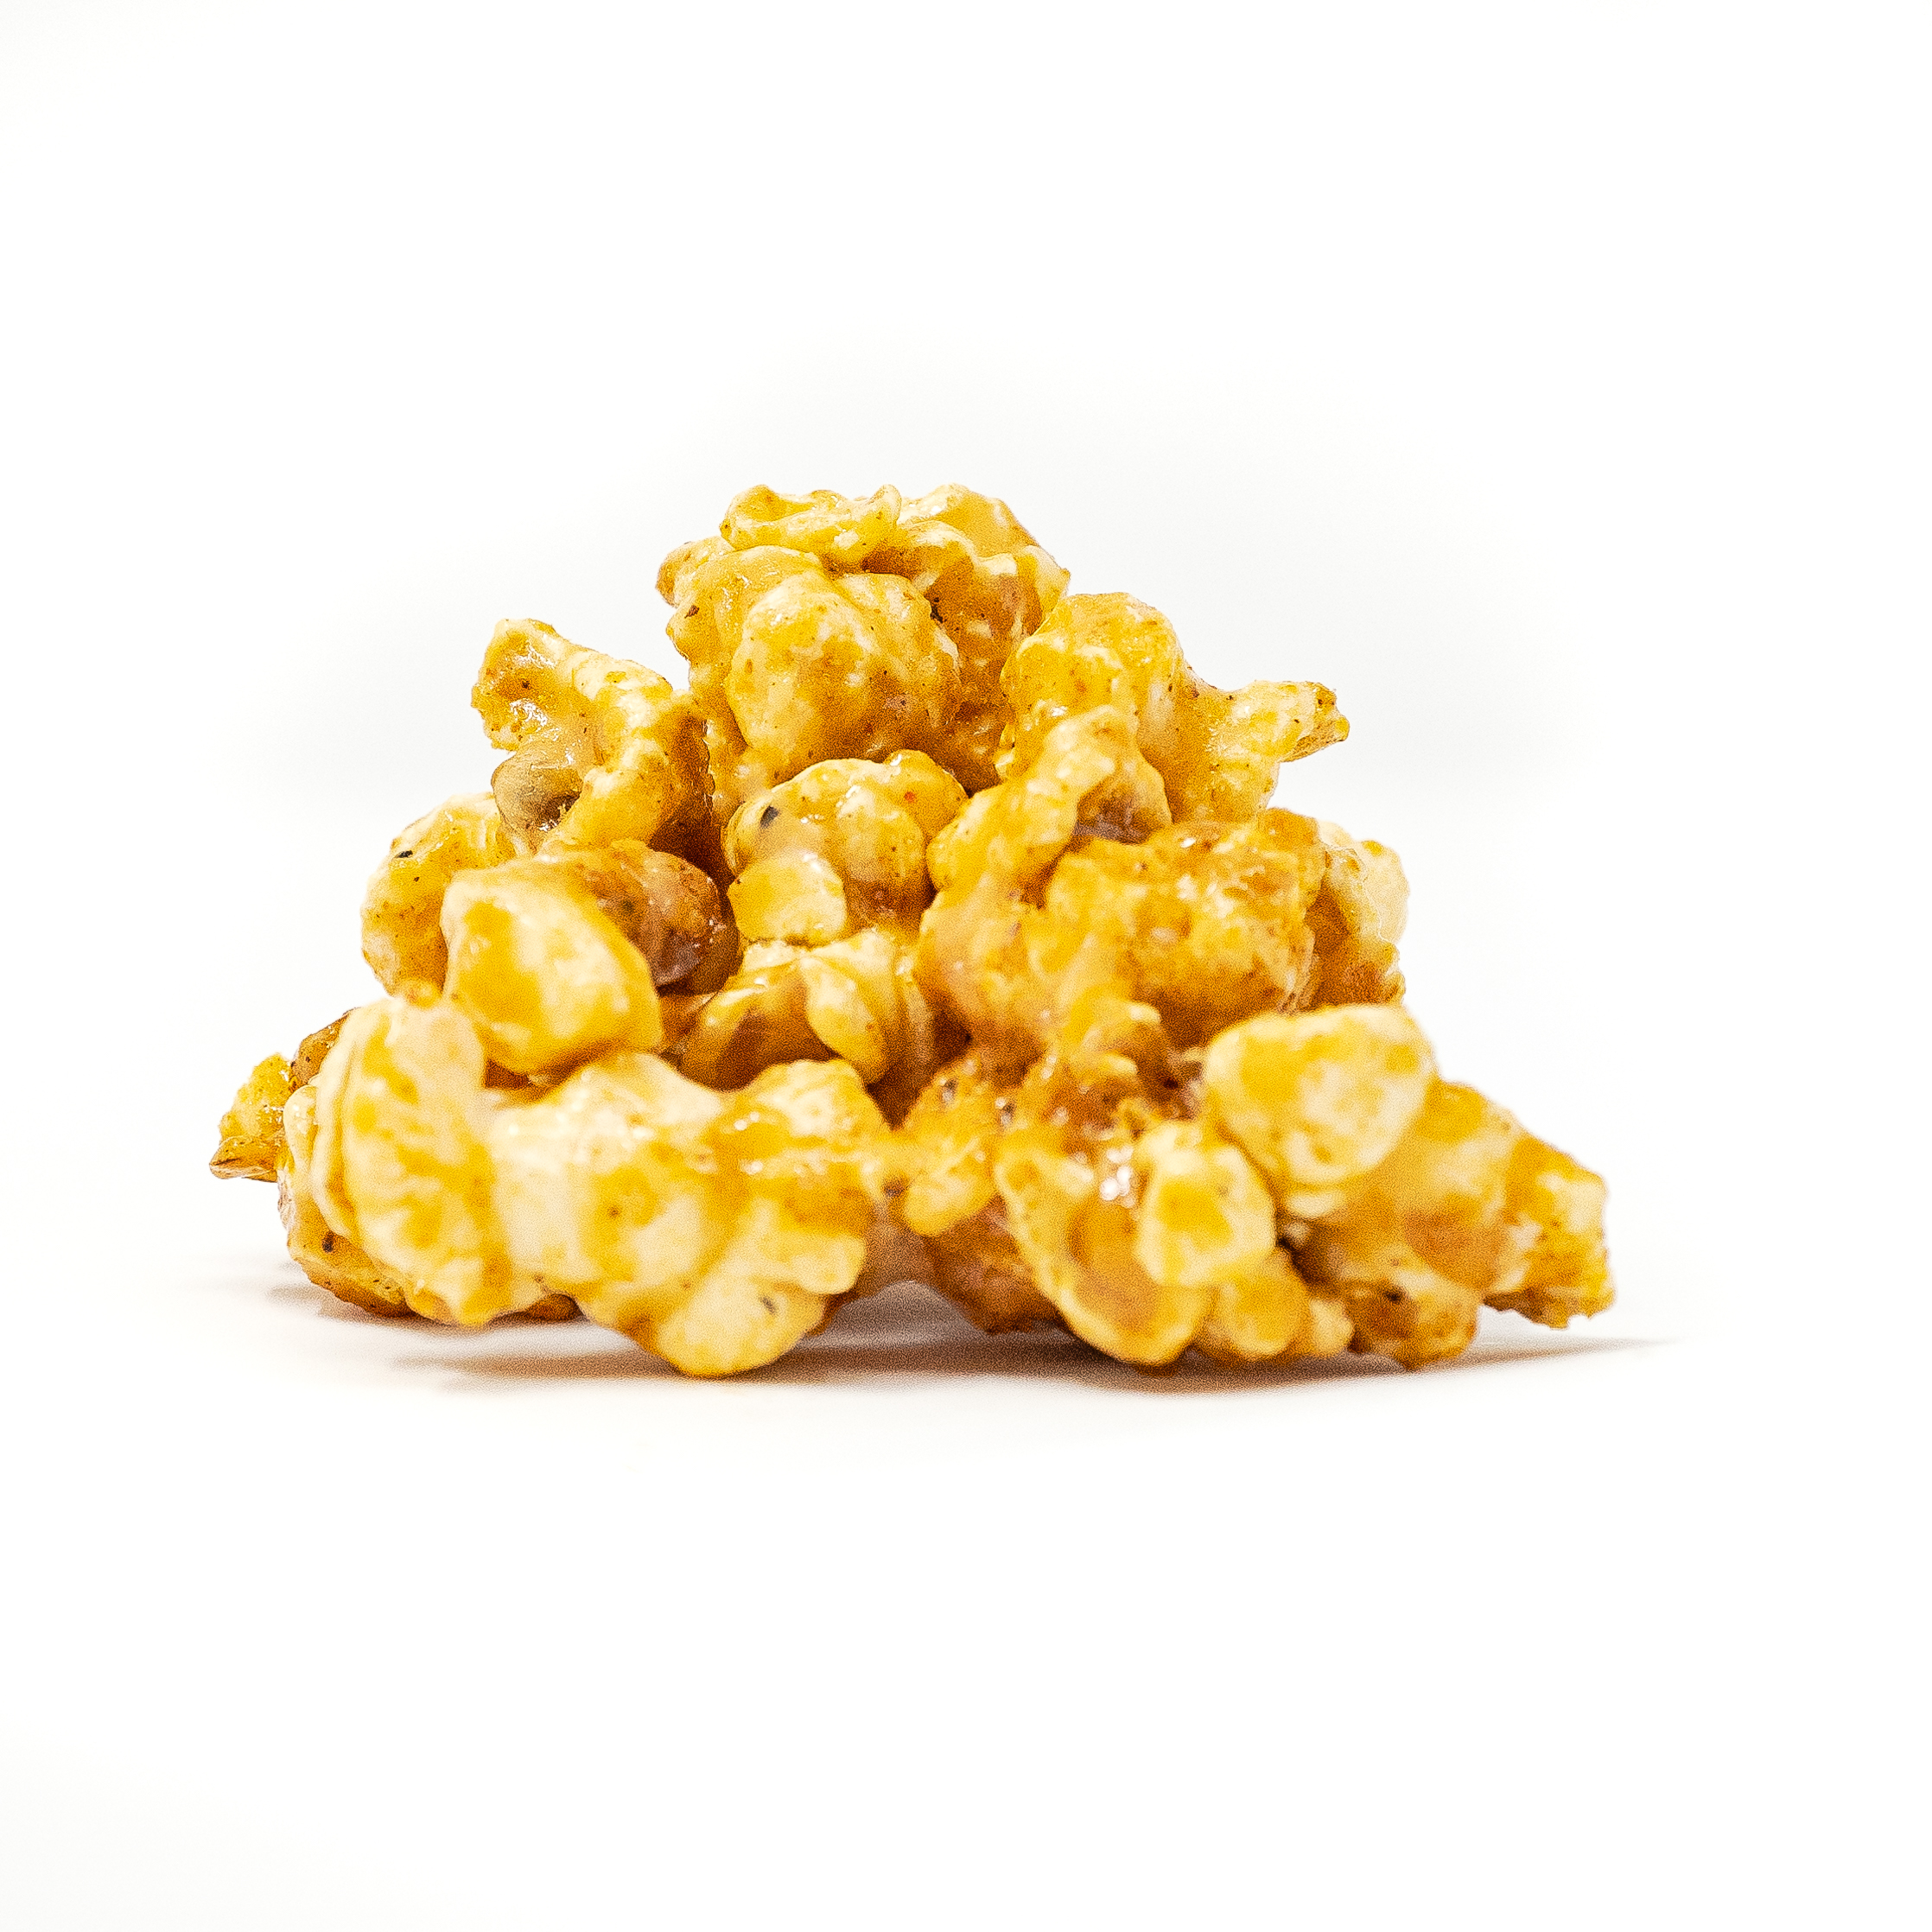 The OG   The original. Sweet honey butter popcorn topped with a savory, spicy kick. This is the flavor that started it all, after 15 years of making...